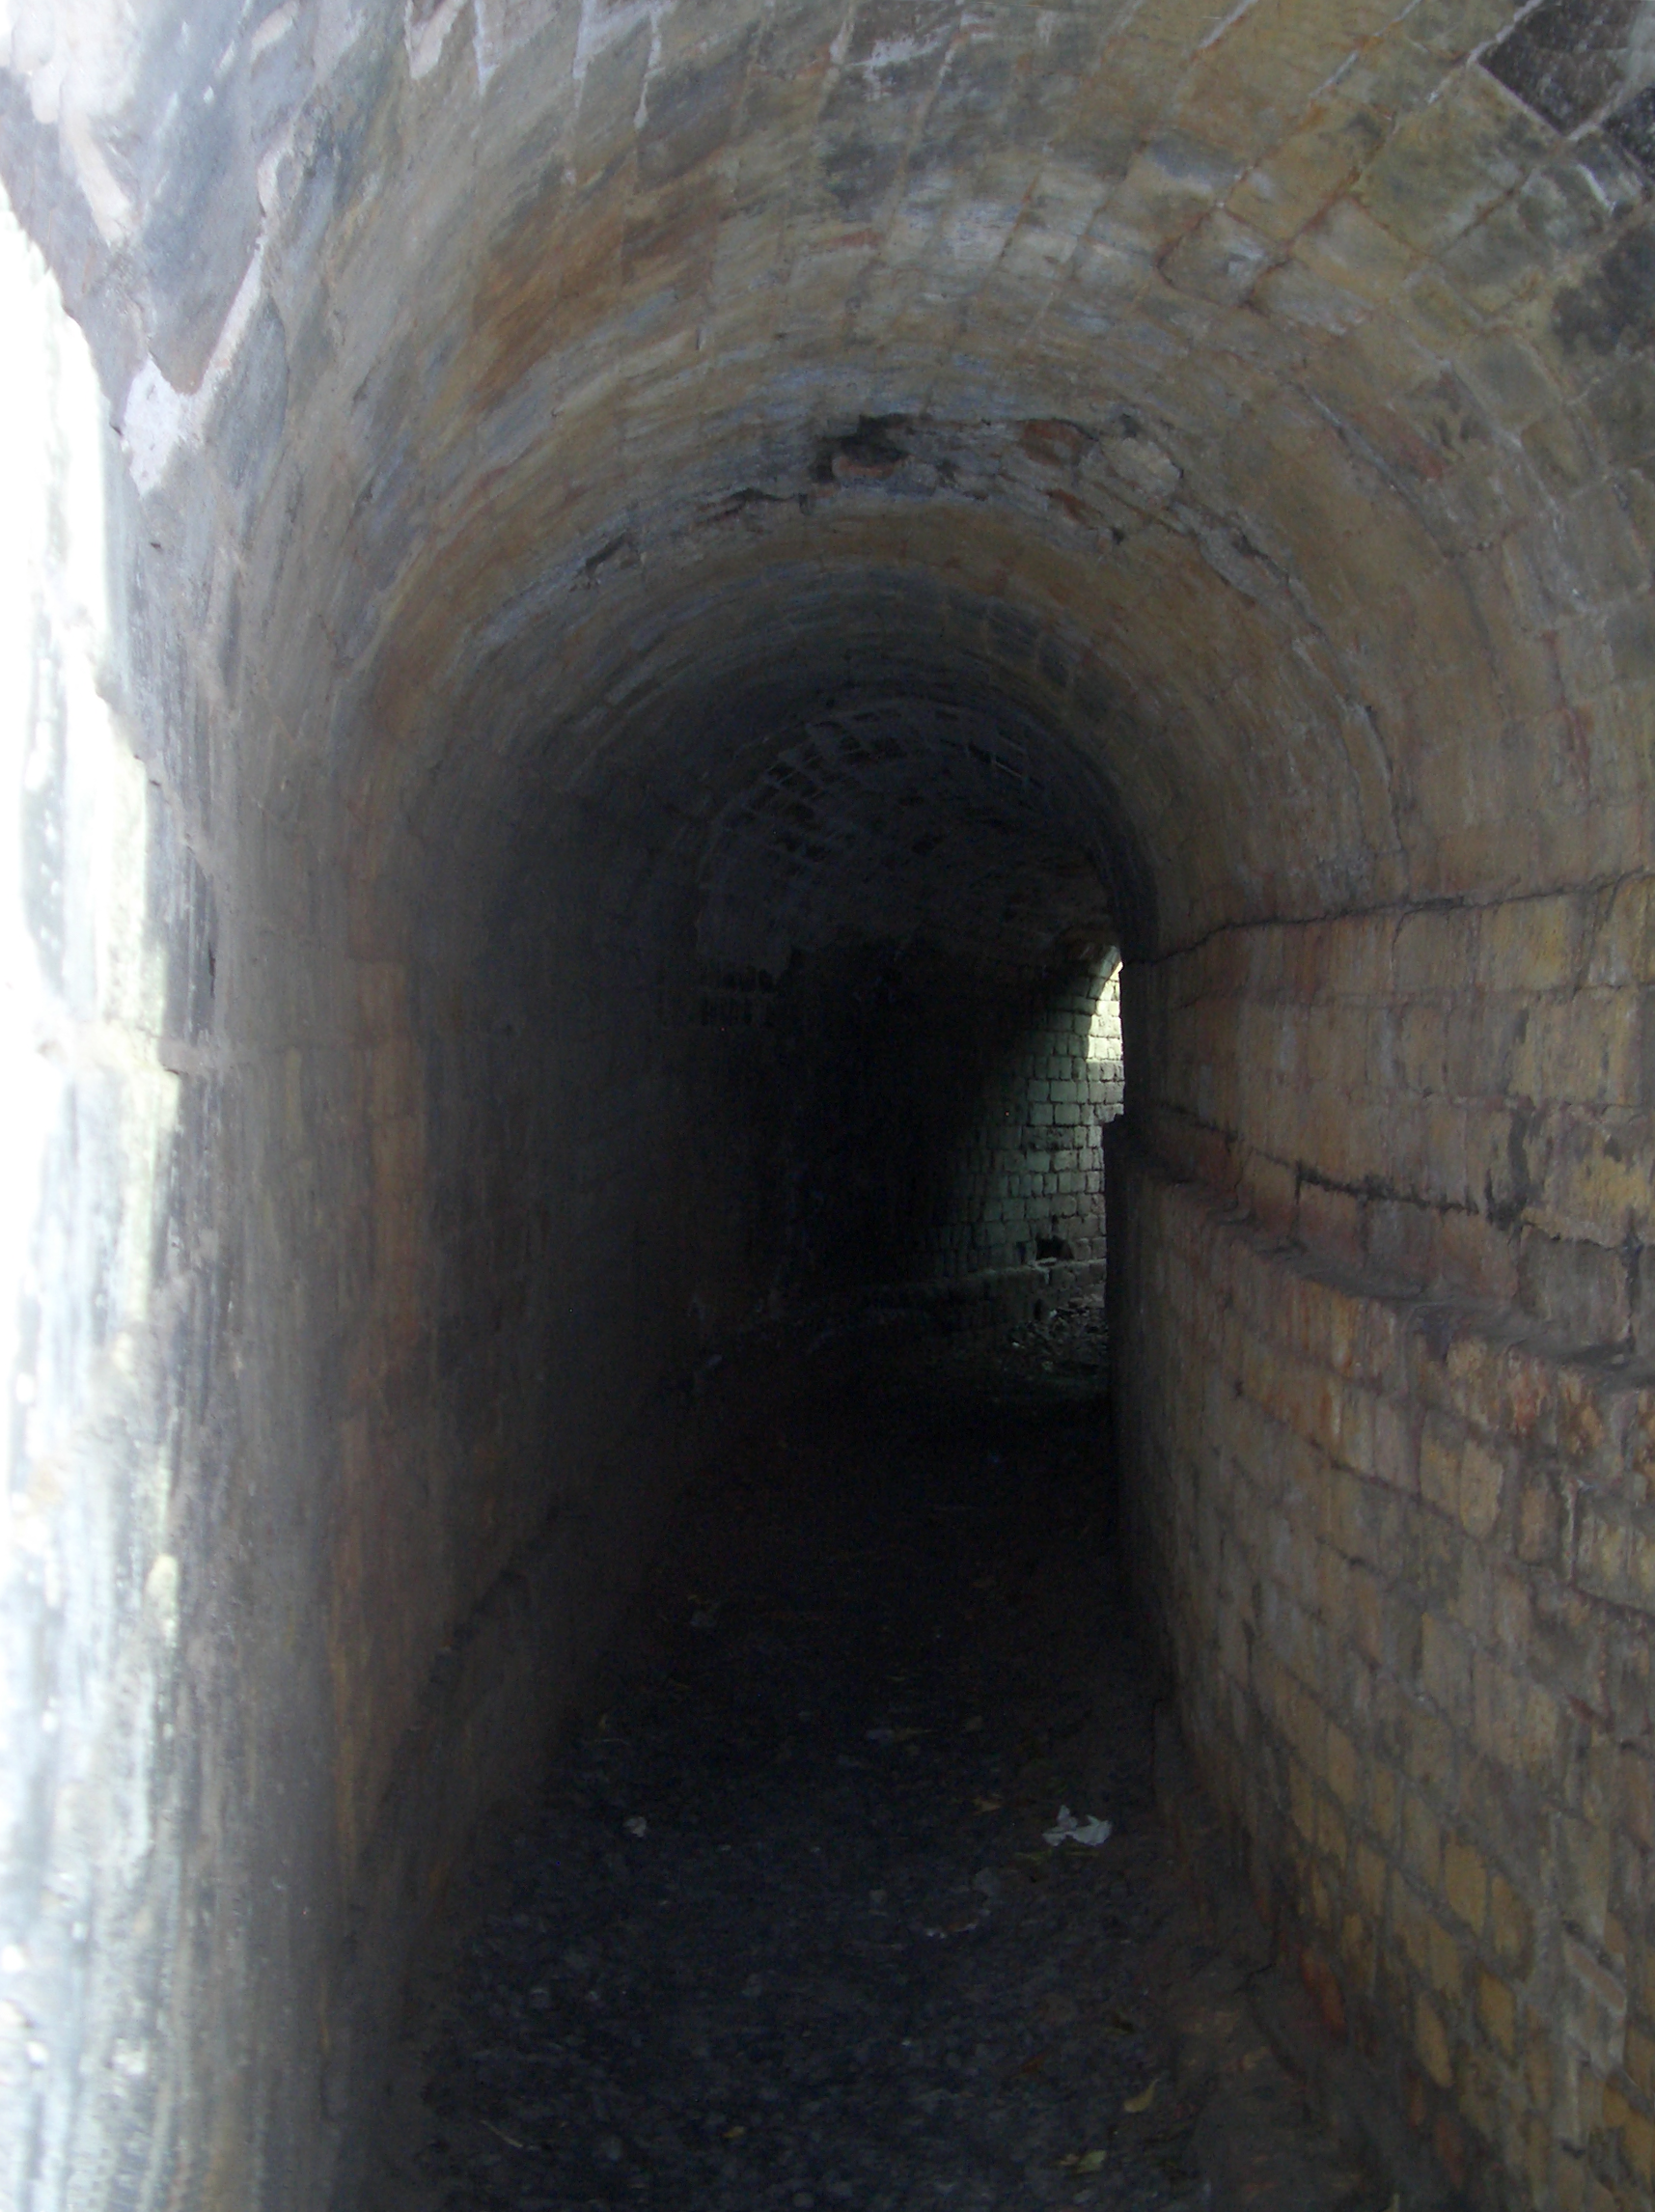 curved brick/stone tunnel